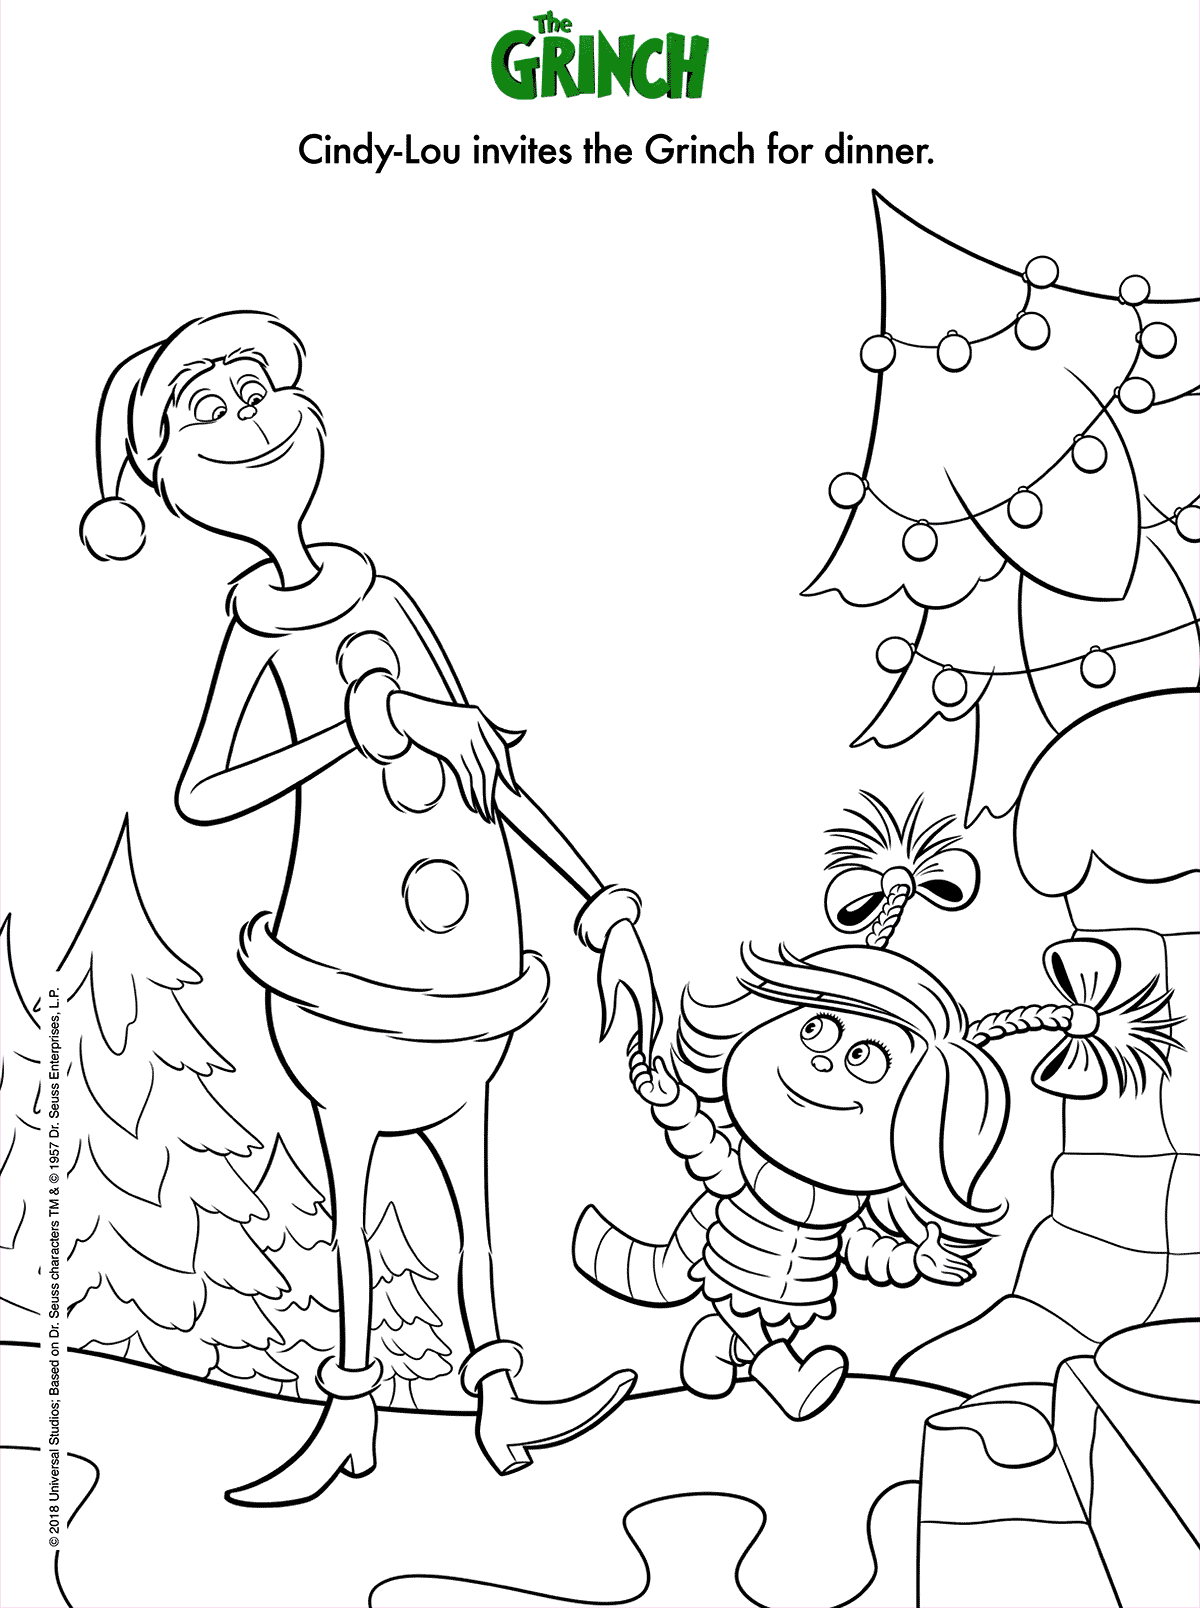 The Grinch Coloring Page Find Lots Of Beautiful Coloring Pages And Printables At Kids Grinch Coloring Pages Christmas Coloring Books Christmas Coloring Sheets